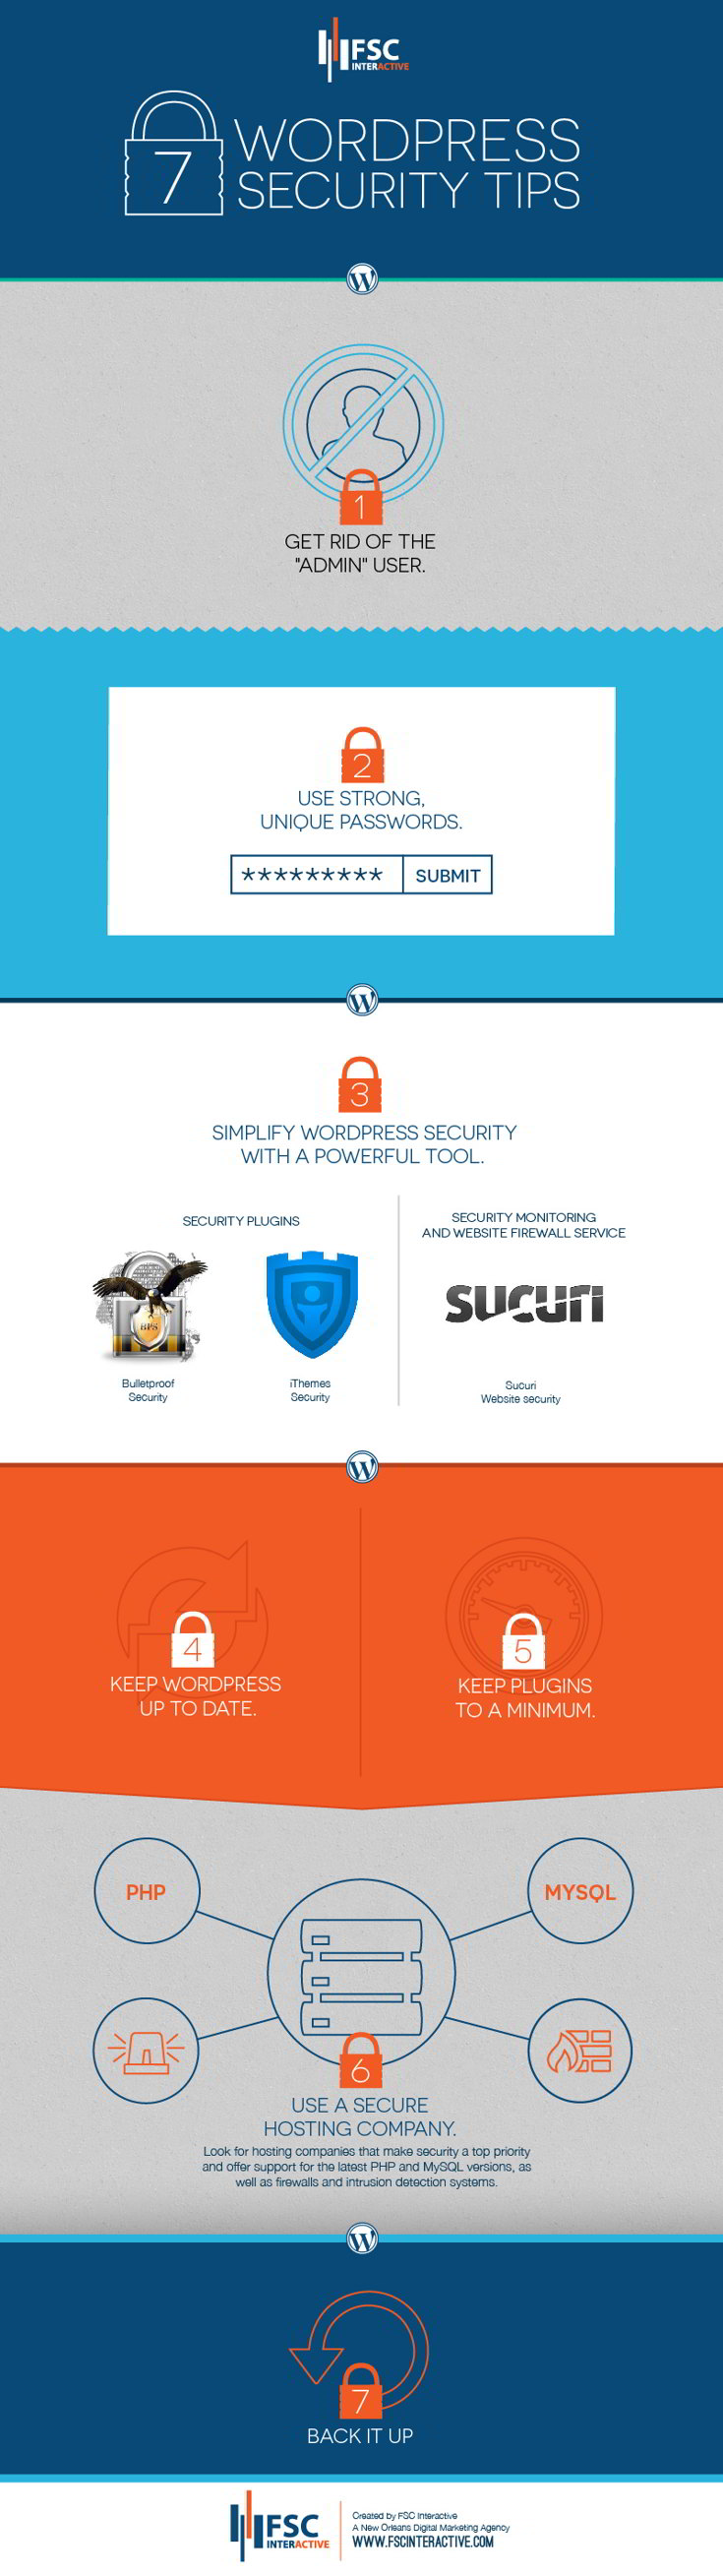 7 WordPress Security Tips. WordPress is one of the easiest, most popular and most powerful content management systems (CMS) in existence today, but as with any widely used software, its popularity can make it a target for hackers. Fortunately, there are a few easy things you can do to secure your site from the majority of attacks. Here are seven WordPress security tips to keep in mind.